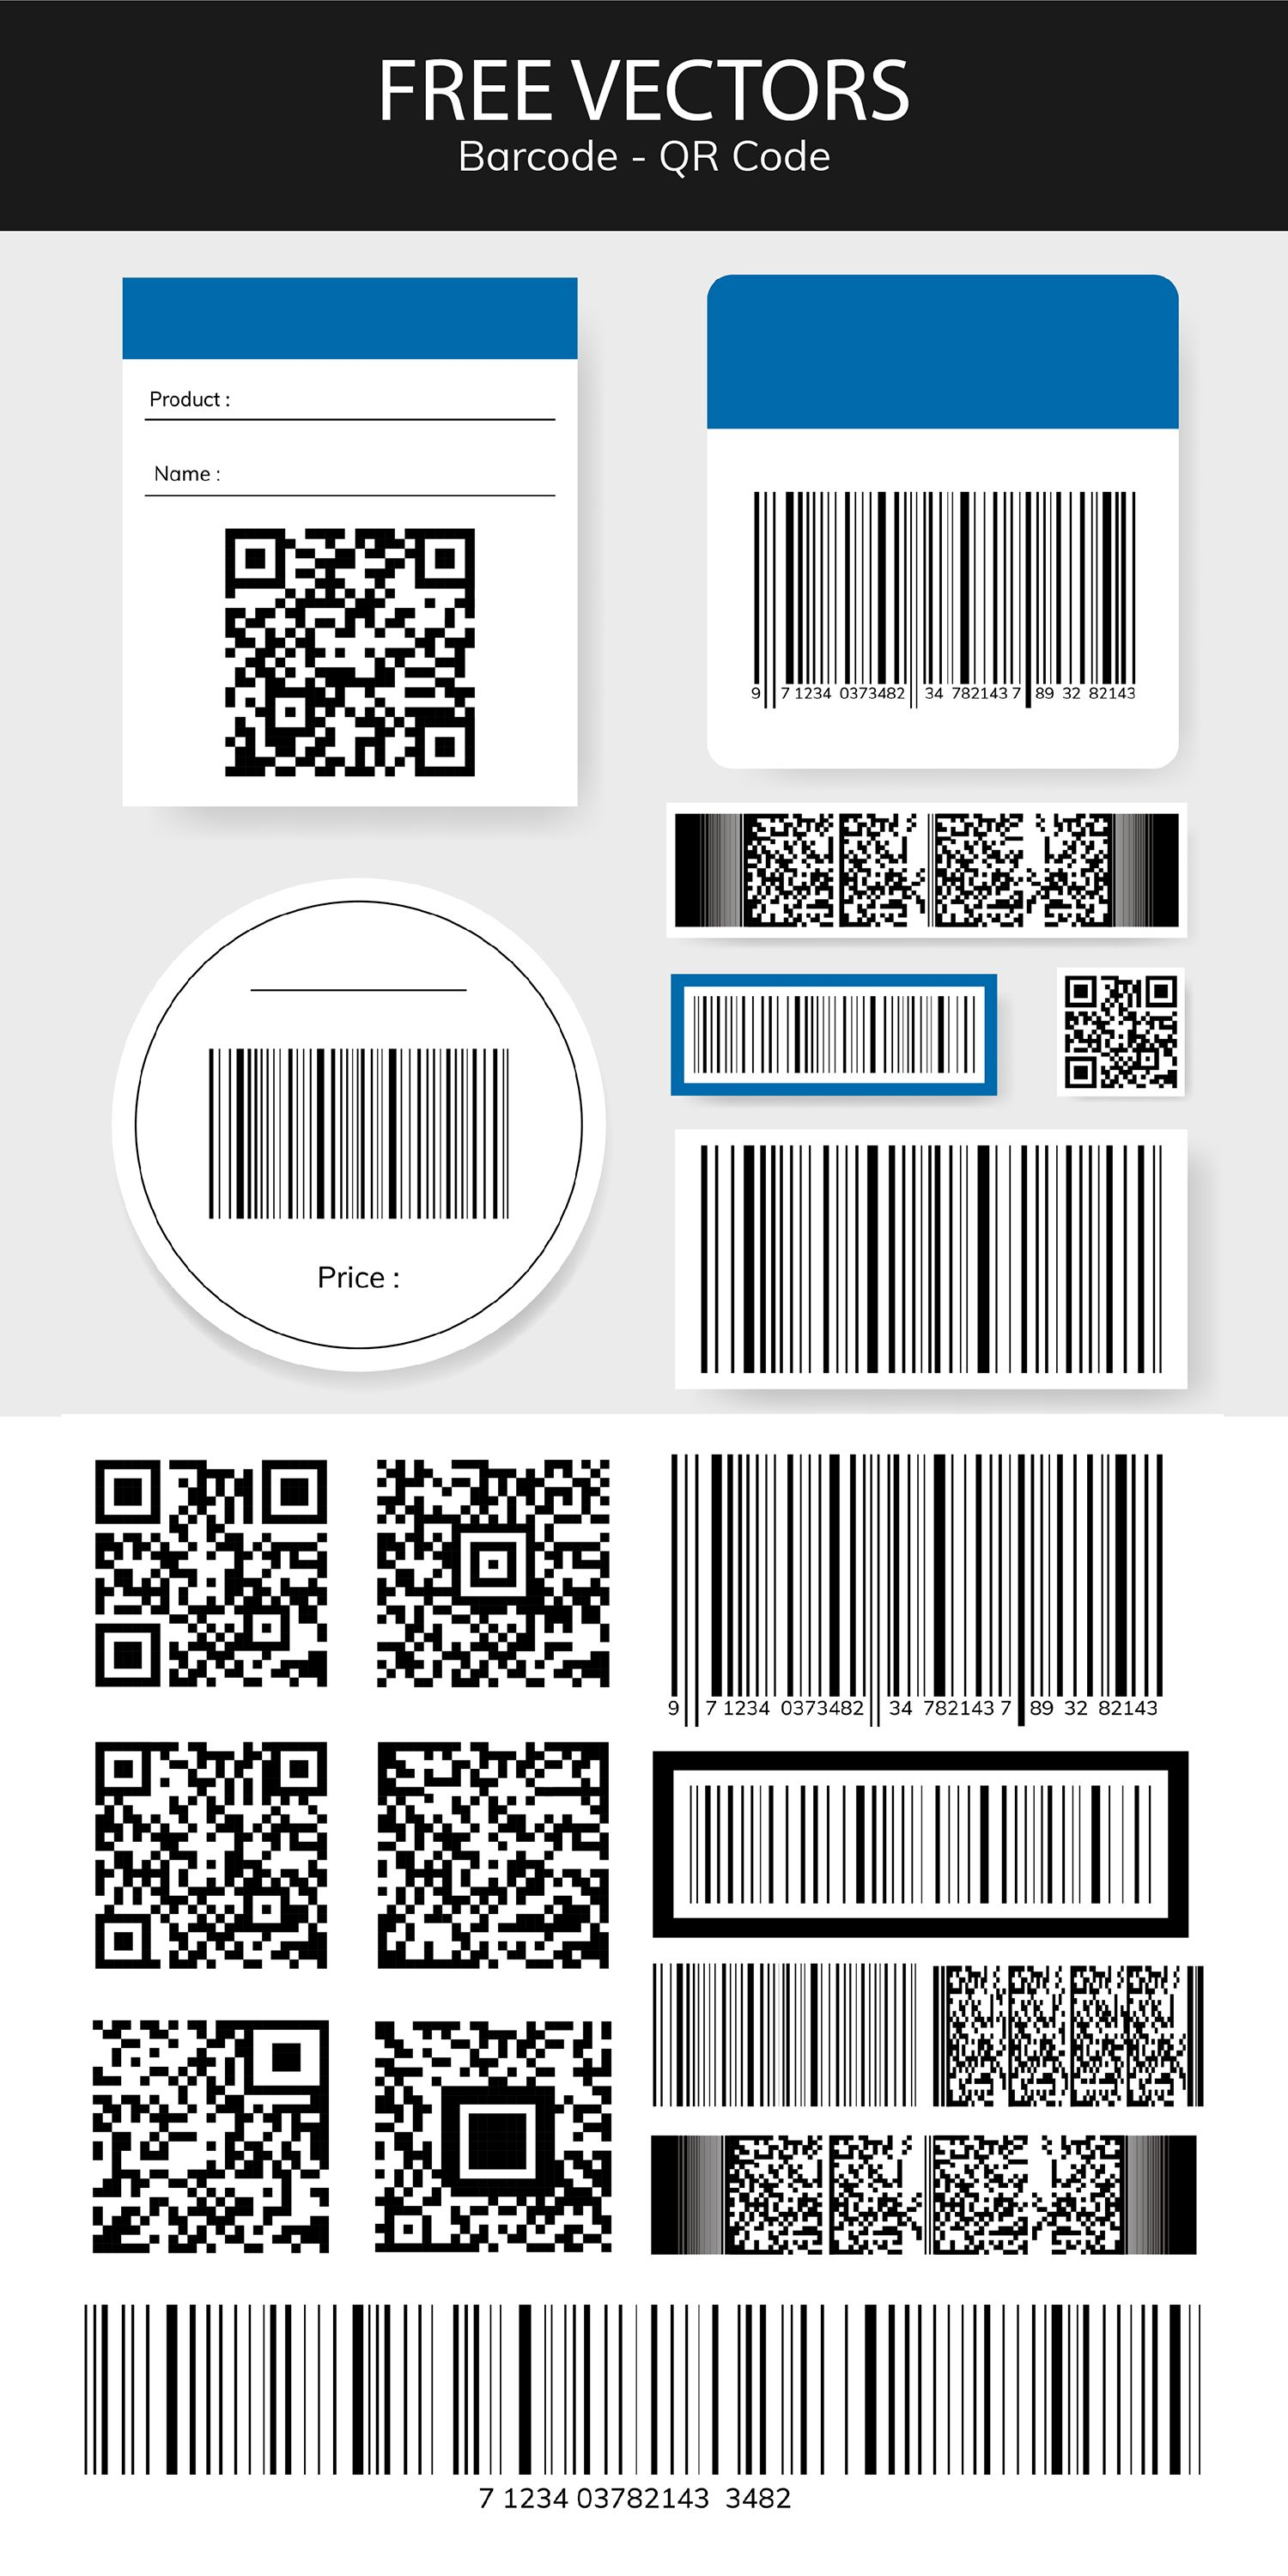 Download This Set Of Barcode And Qr Code Vectors As Well As Other Design Resources Images Psd Ve Texture Graphic Design Sticker Design Web Design Resources